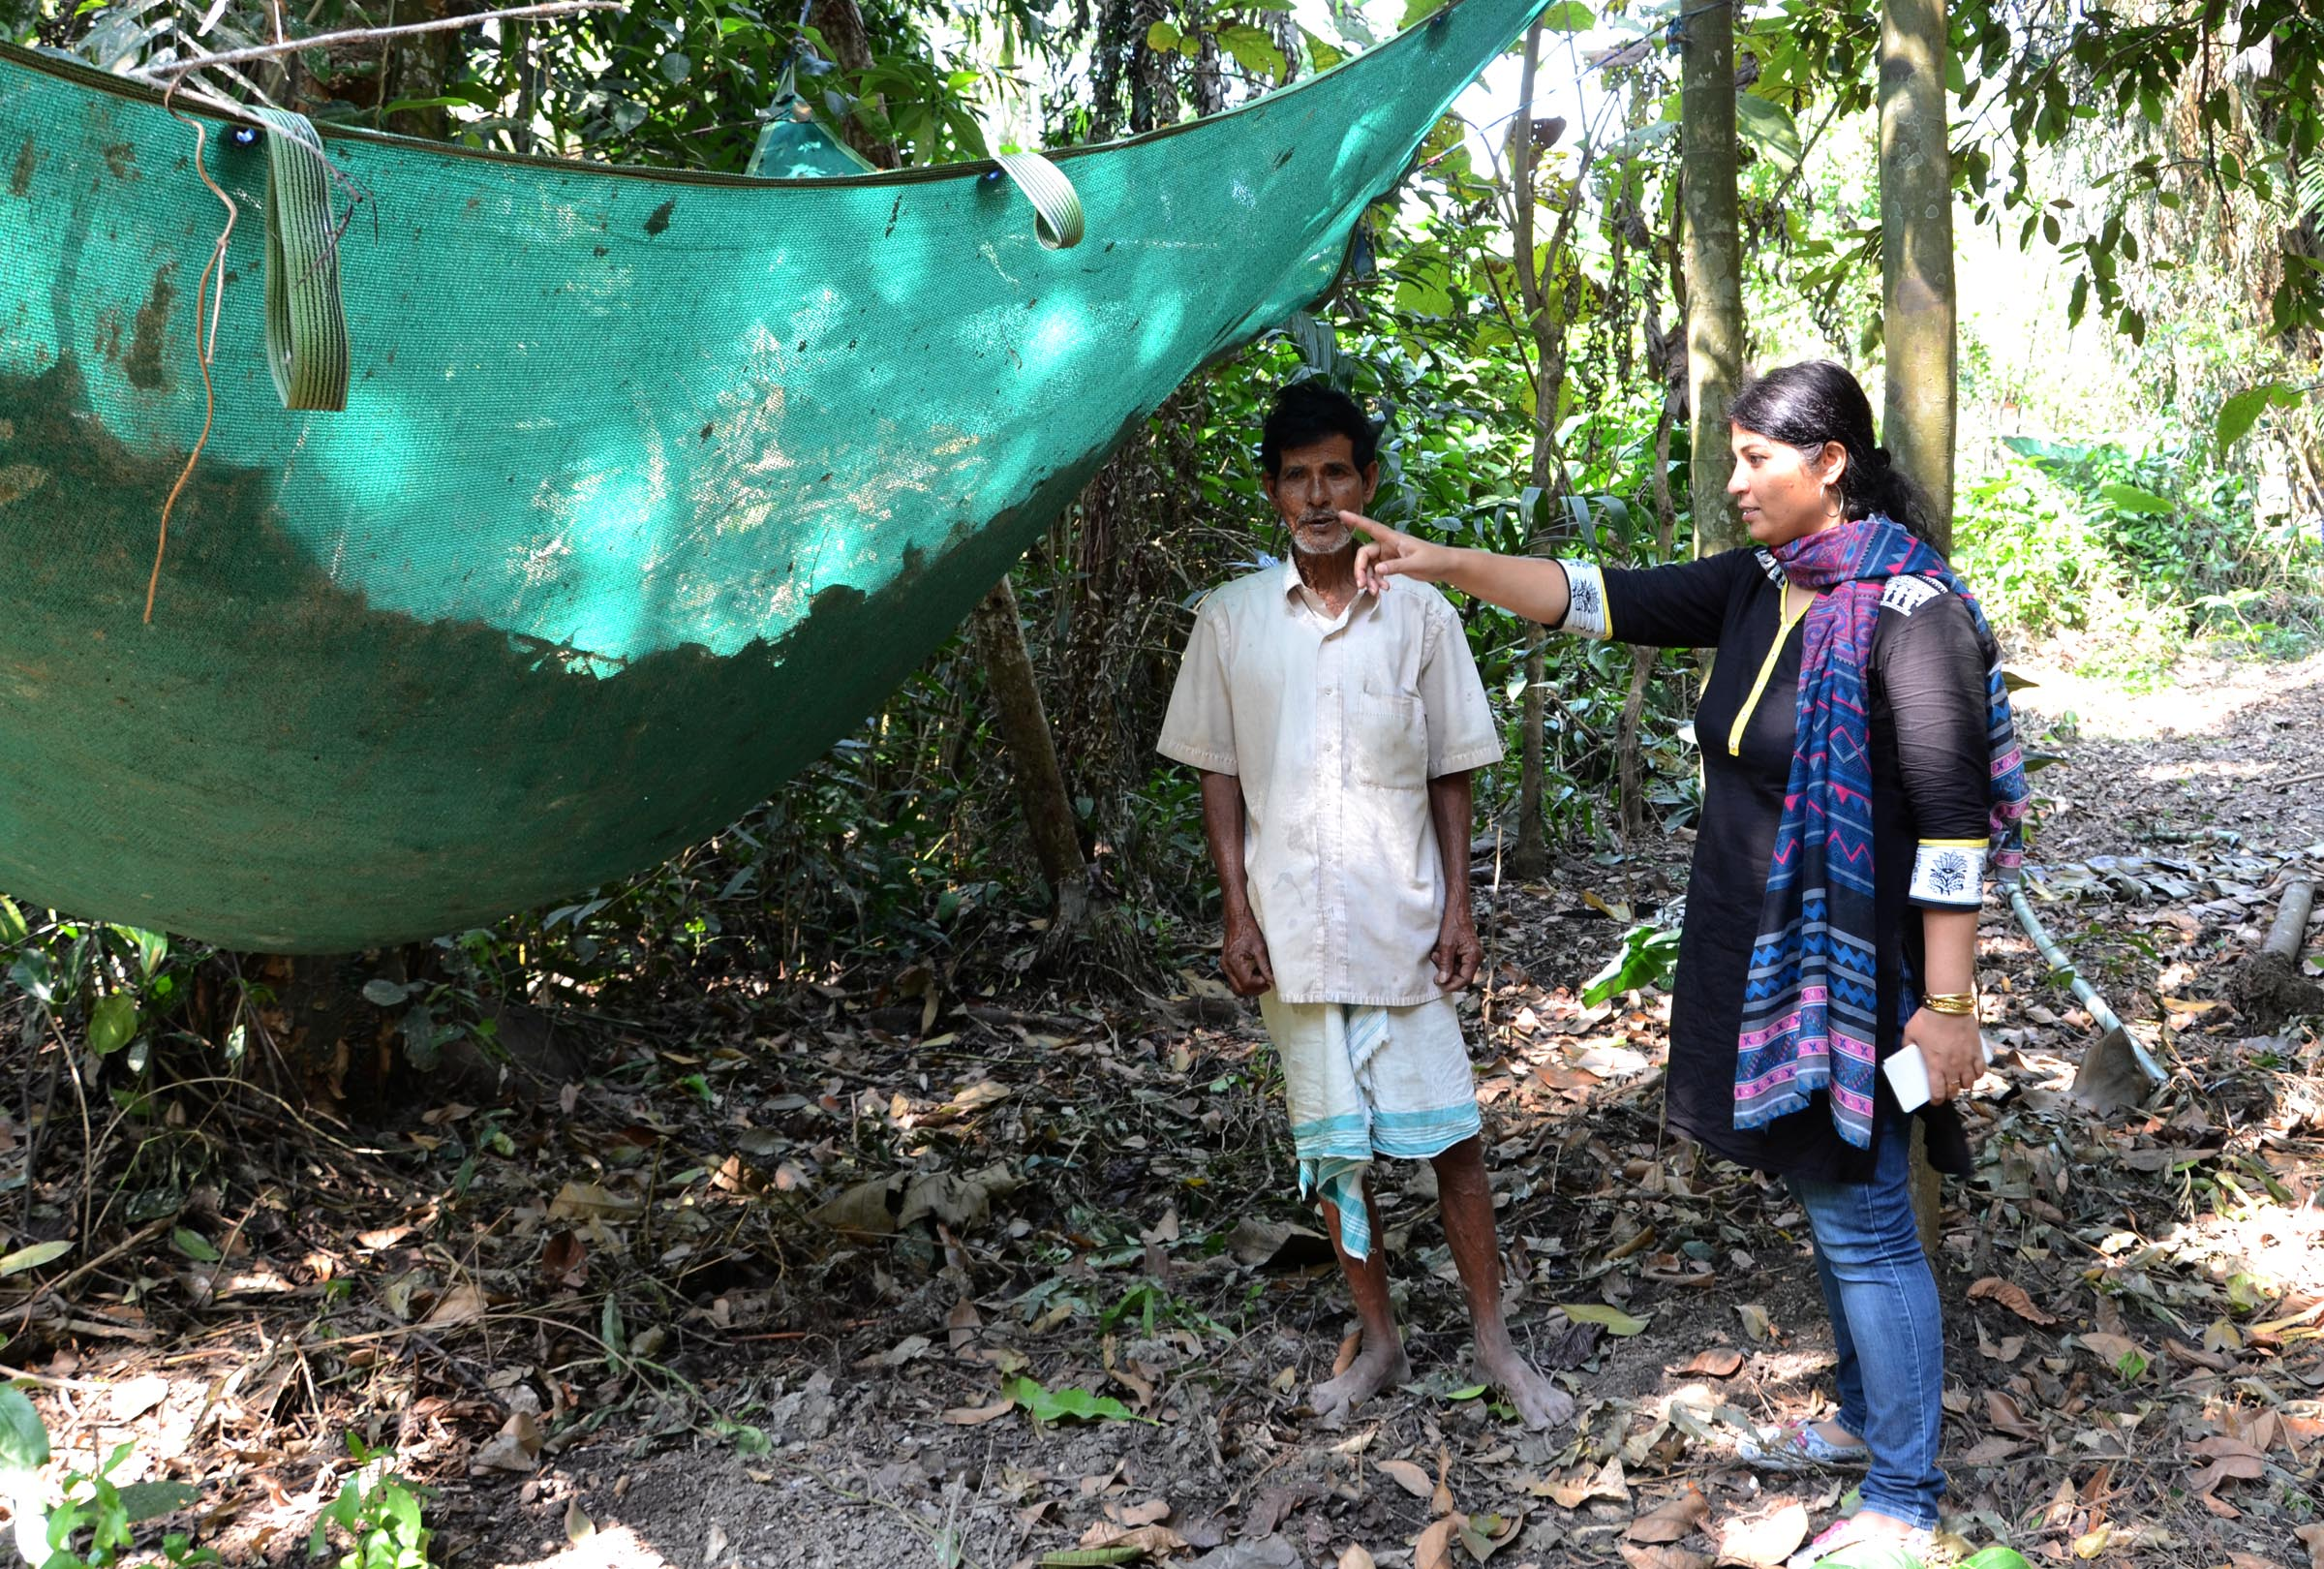 Purnima Devi Barman supervises a net under a nesting tree, put in place to protect the newborn chicks from falling to their death. Photo: Abdul Gani